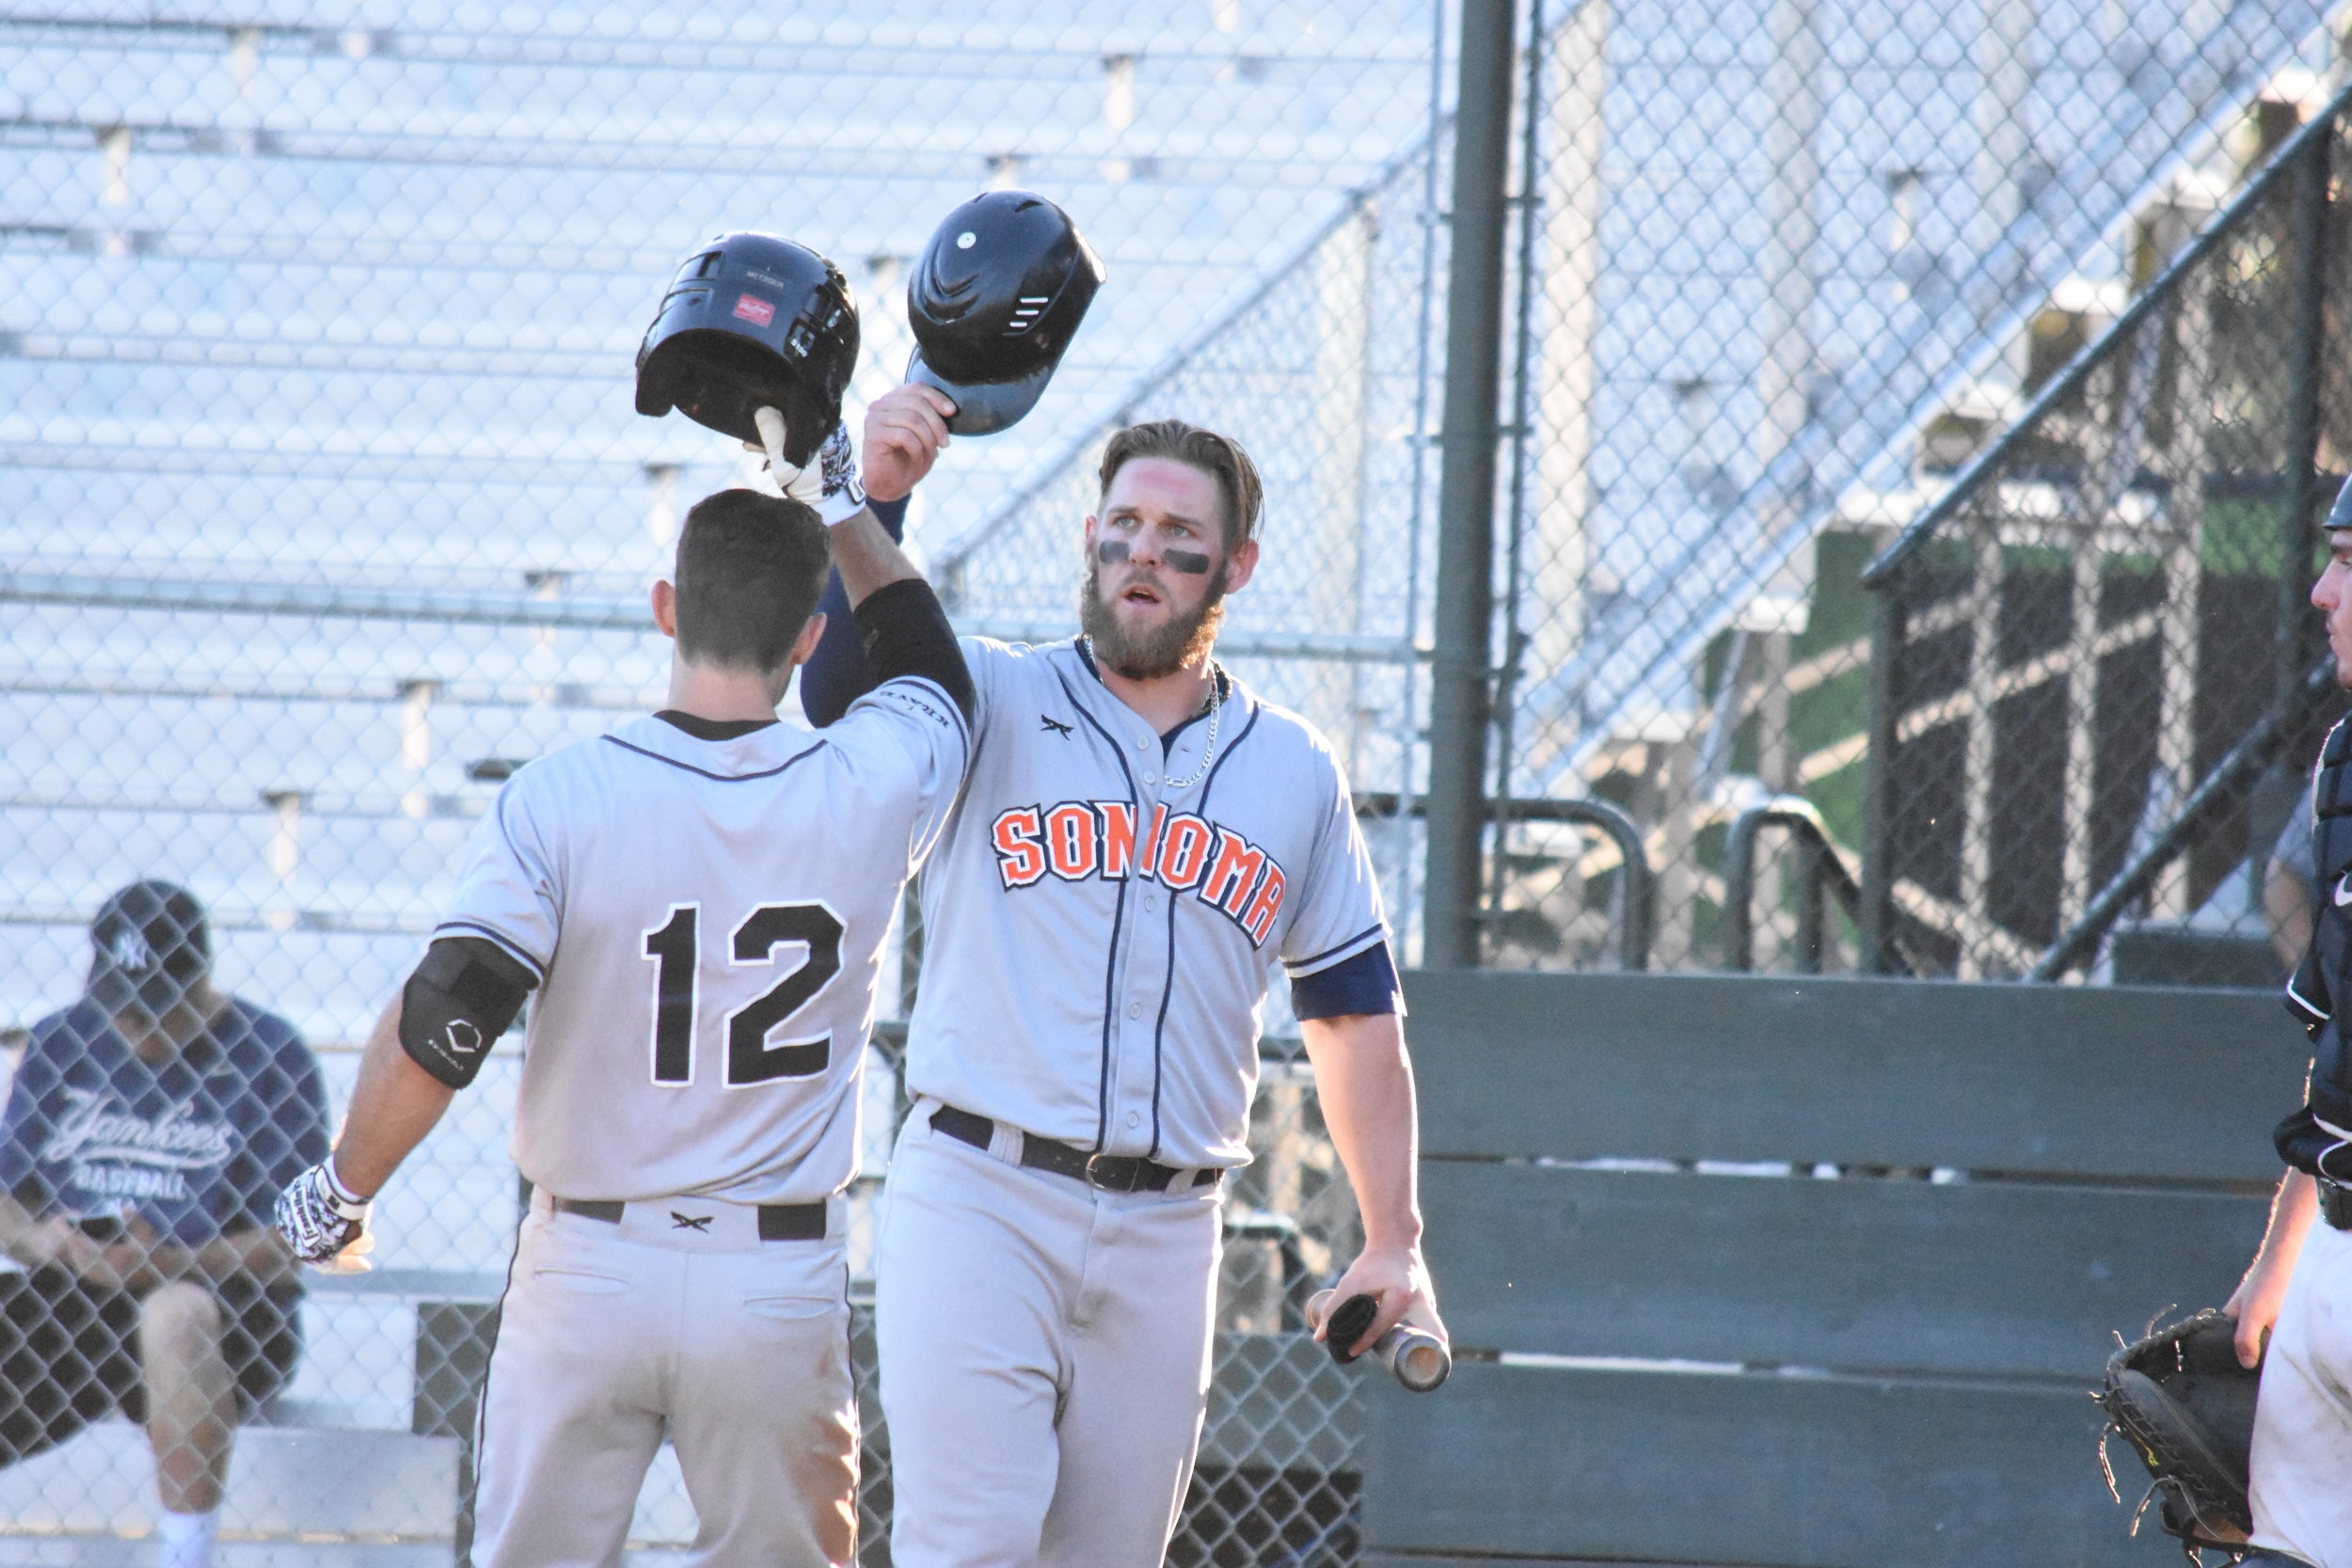 Brennan Metzger (left) hit a home run in the eighth inning of Saturday night's 7-5 win over the Pittsburg Diamonds, securing the Sonoma Stompers' first series victory of the season. (James W. Toy III / Sonoma Stompers)